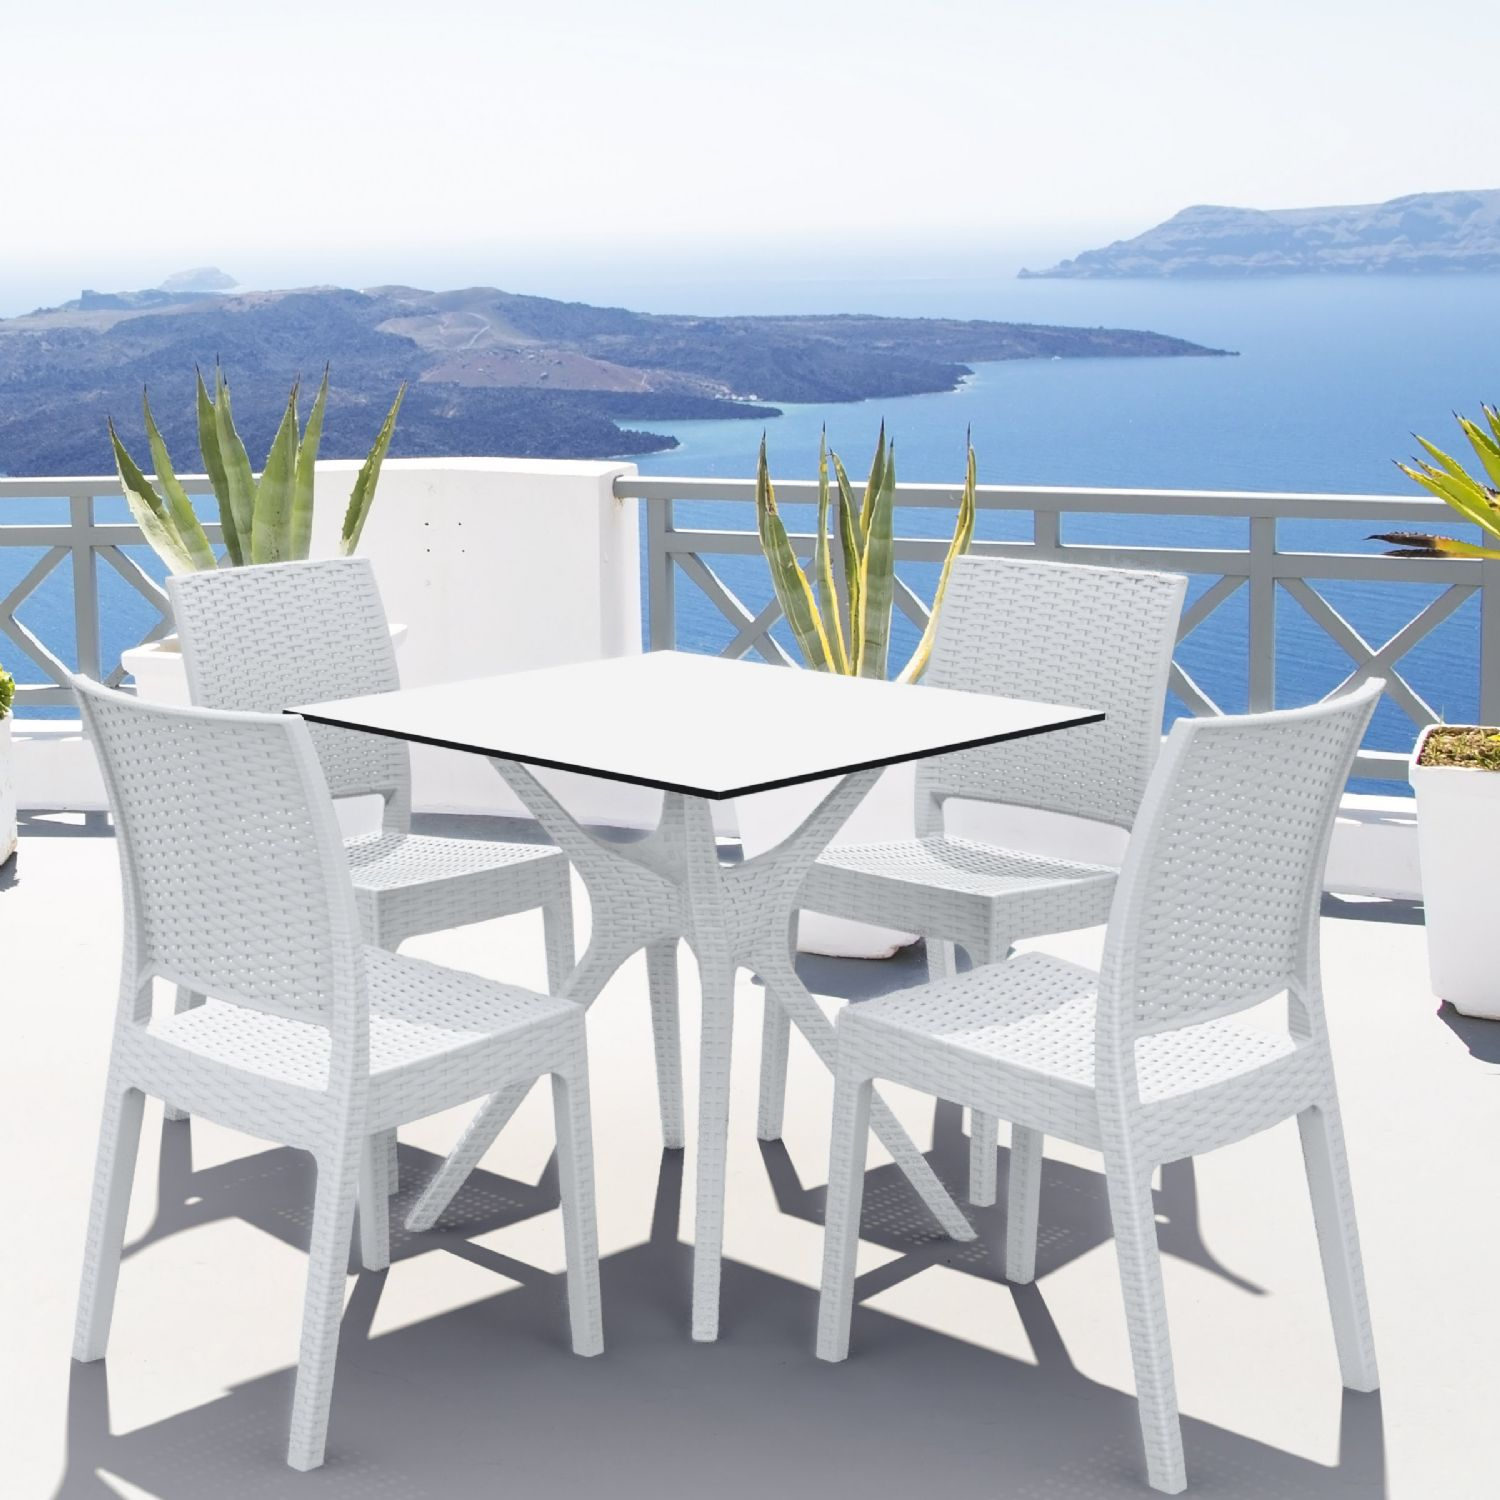 Ibiza Florida Square Patio Dining Set 5 Piece White ISP8631S-WH - 4